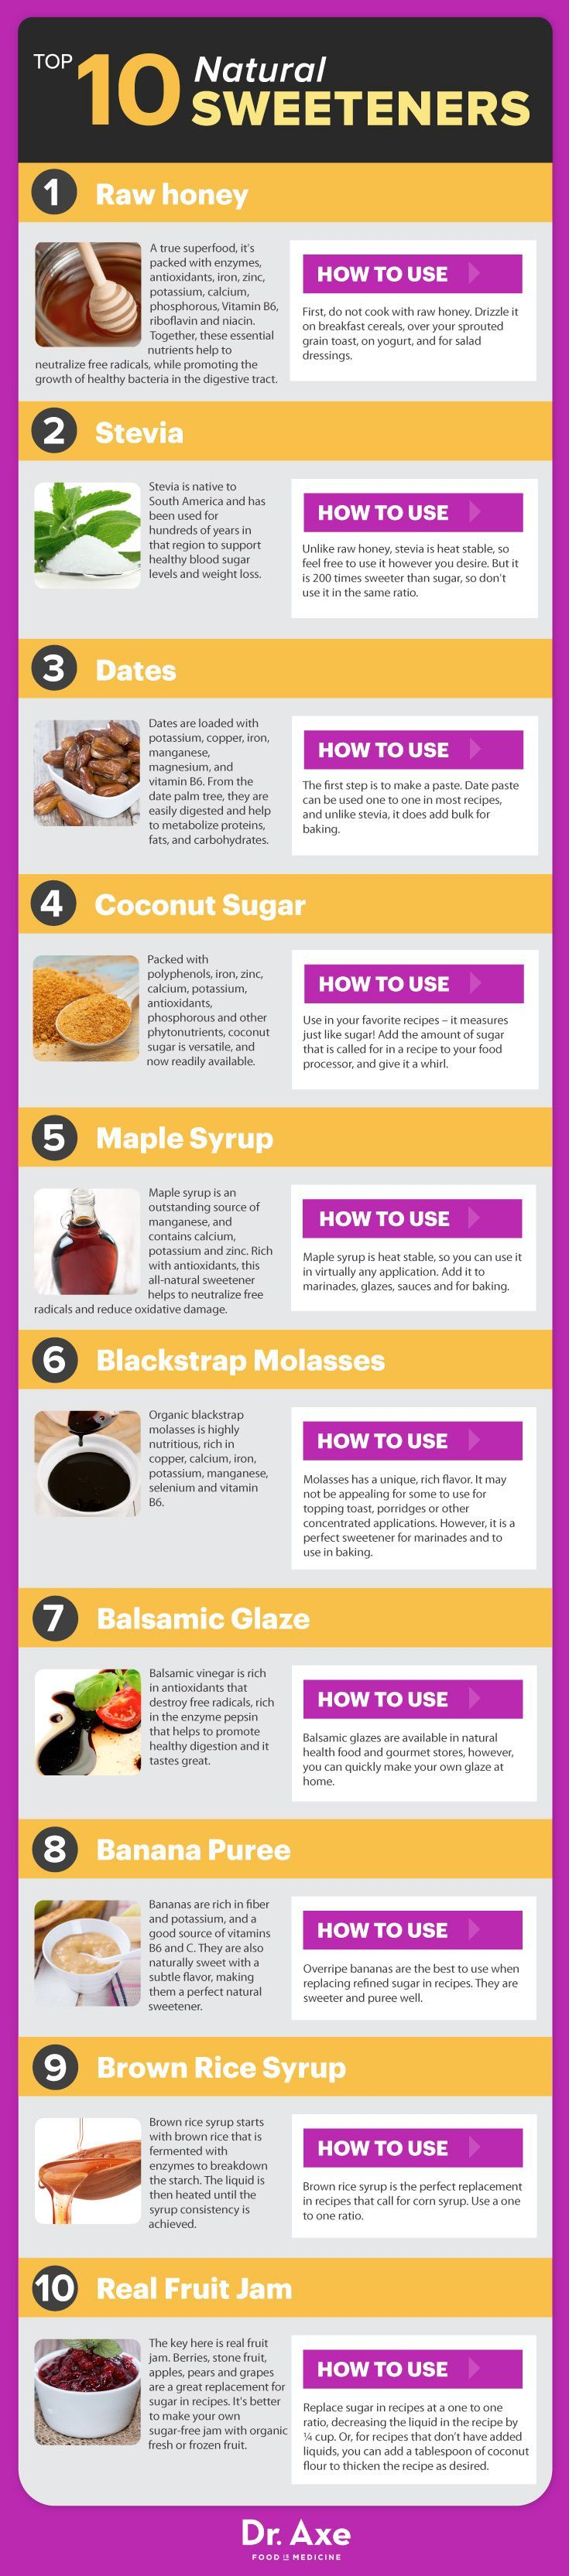 Top 10 natural sweeteners  http://www.draxe.com #health #holistic #natural